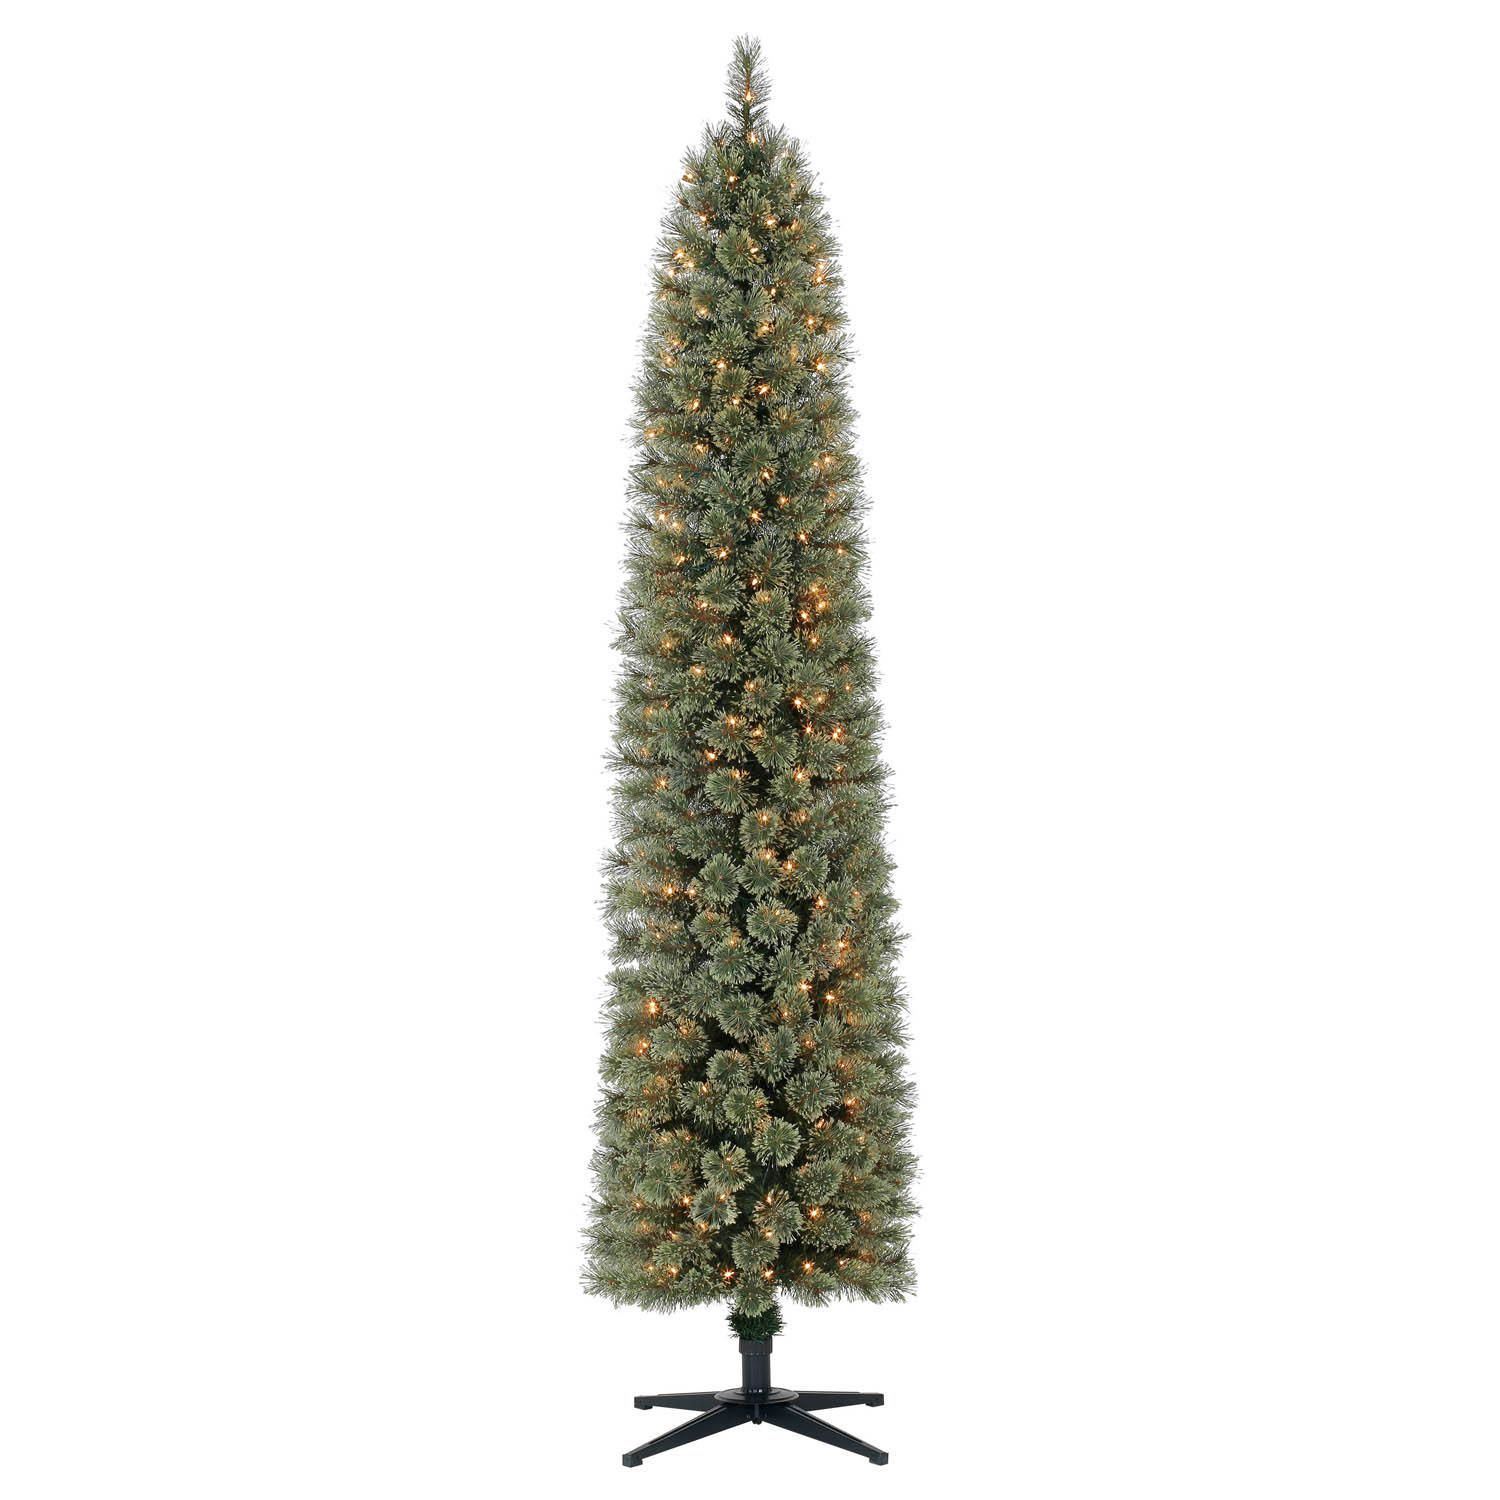 holiday time 7 shelton cashmere pencil fir christmas tree - Holiday Time Christmas Trees